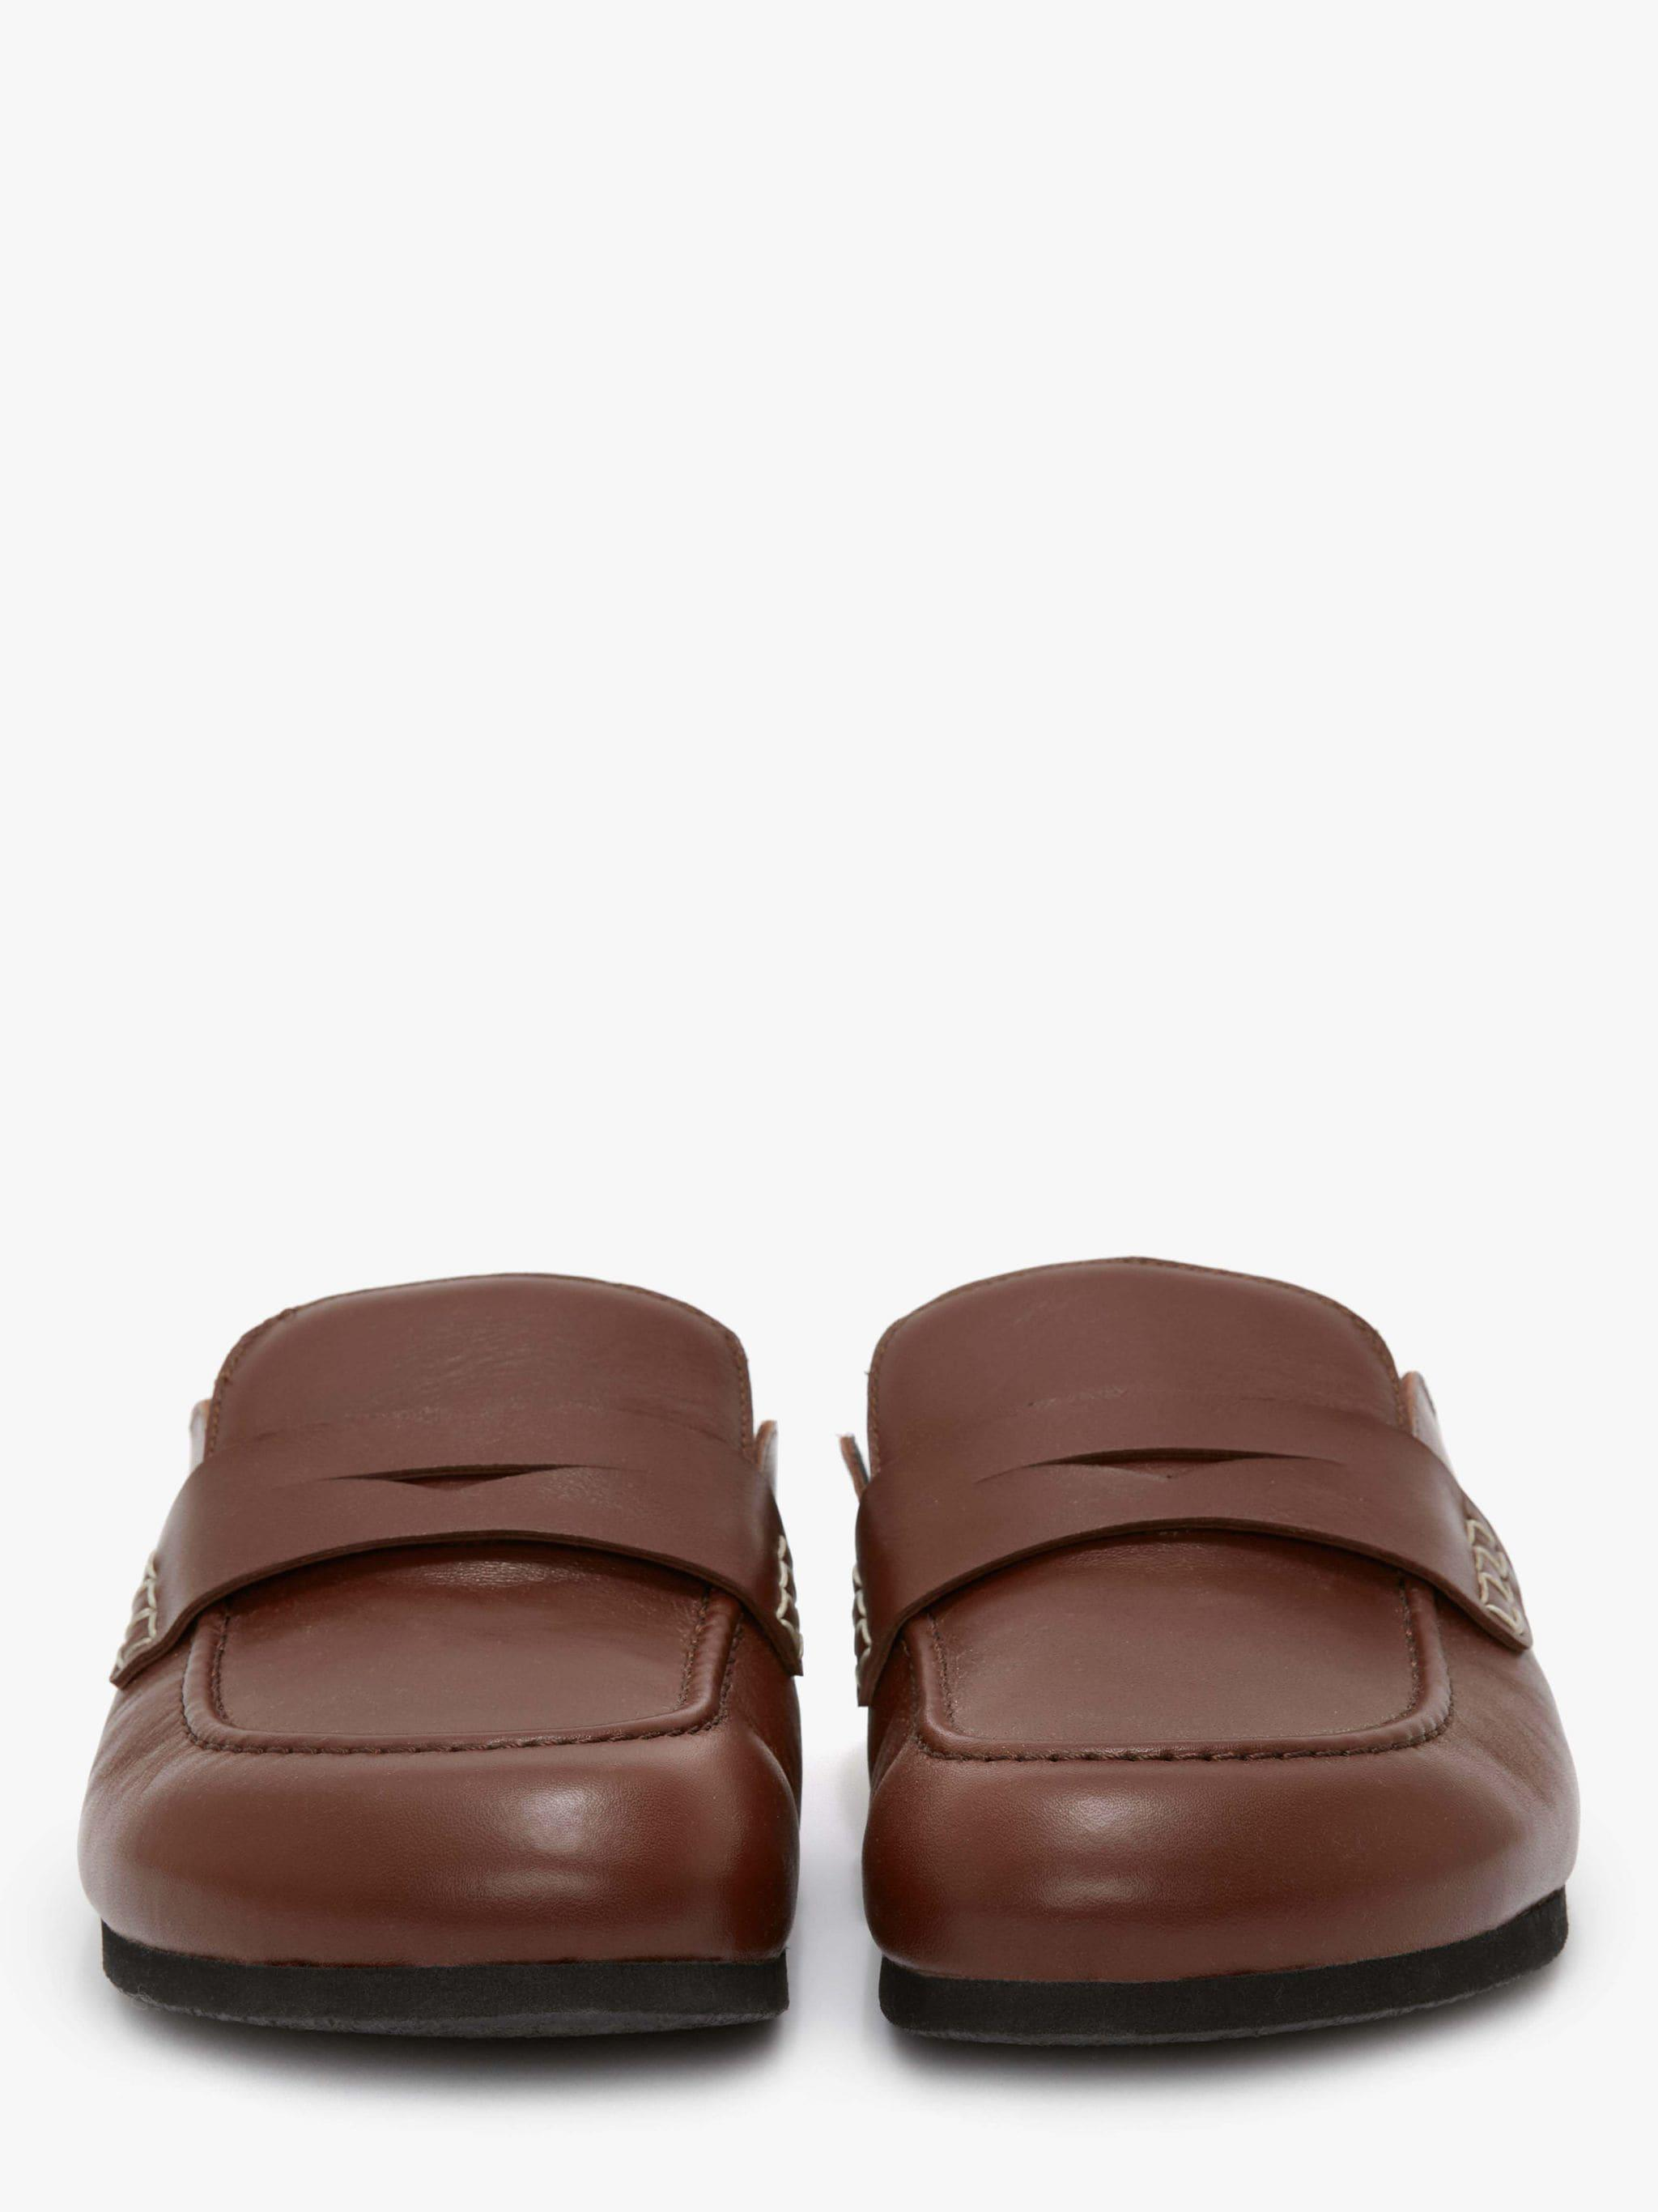 MEN'S LEATHER LOAFER MULES 2